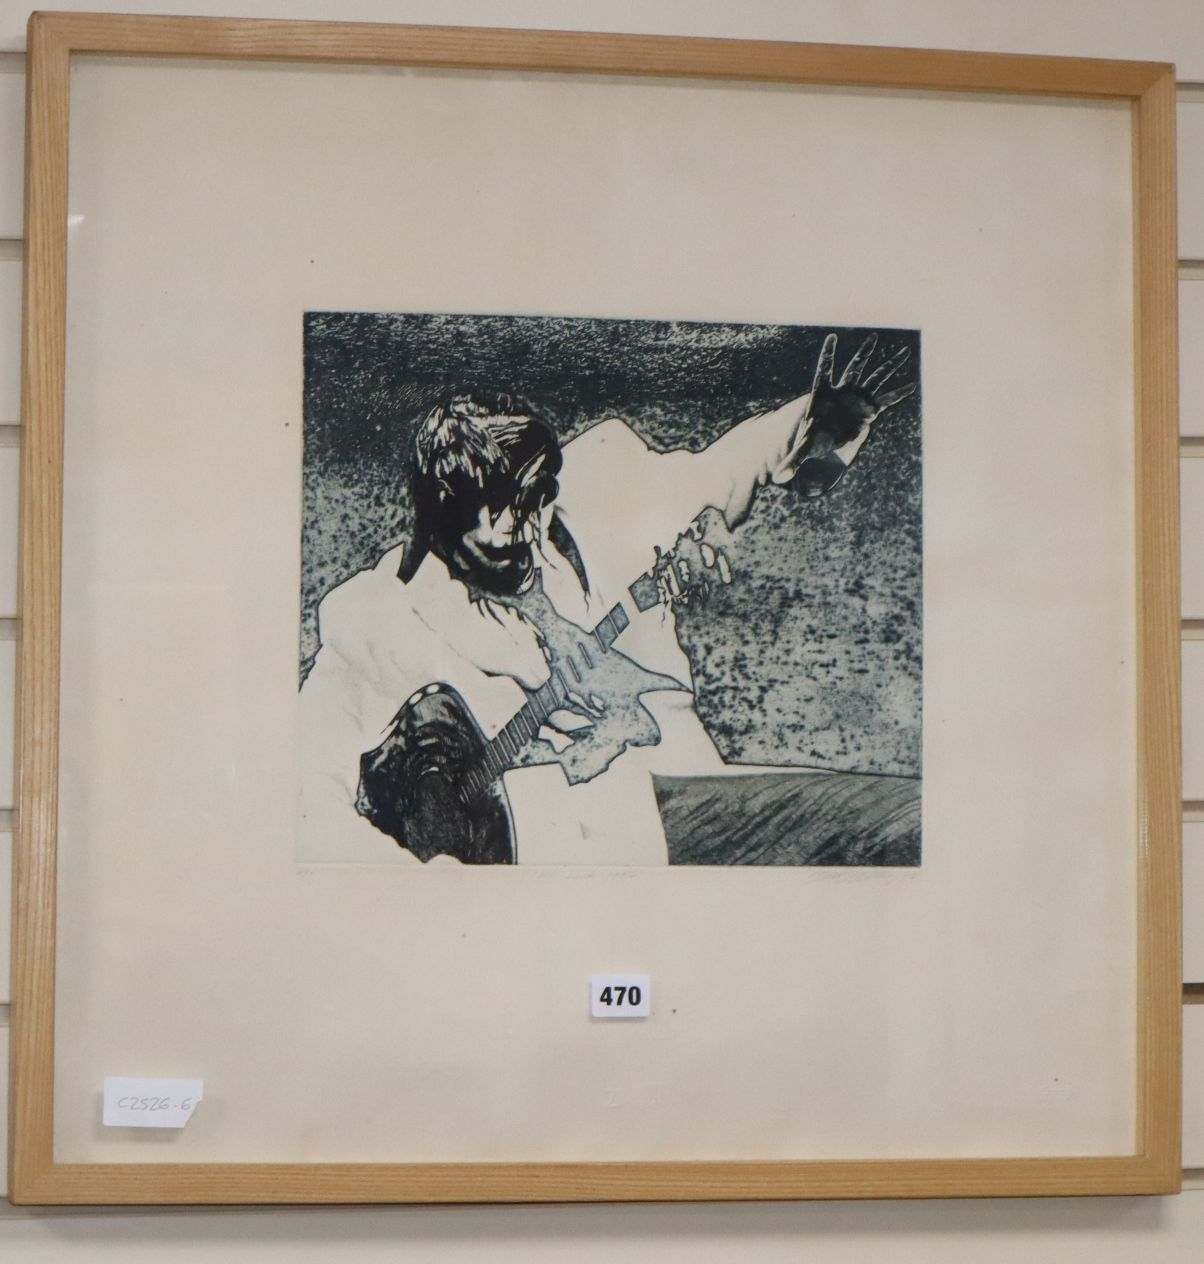 Lot 470 - David Oxtoby (b.1938), limited edition print, Mr Rock 1956, signed and dated '74, 2/50, 57 x 58cm